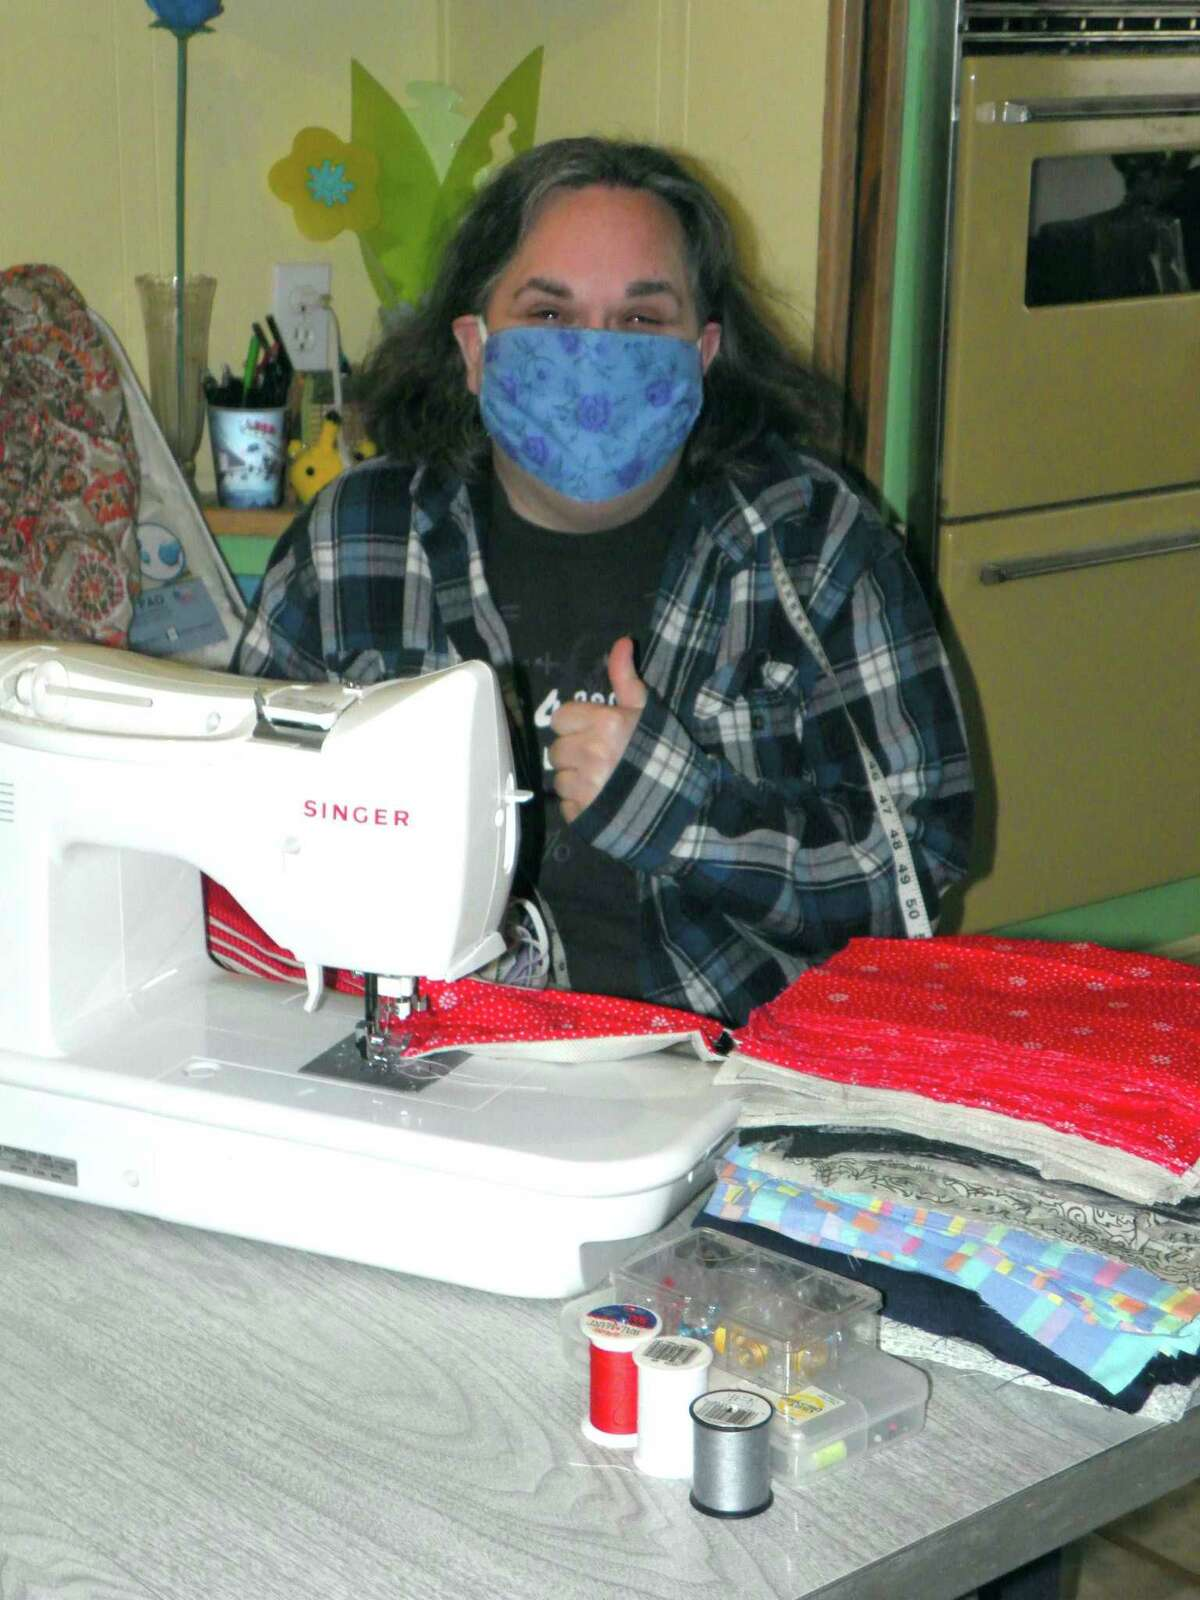 Laura(pictured), works with her sister, Linda Marshall, to make hand sewn face masks. They have made more than 300 masks, which are free to anyone who requests them. (Submitted photo)